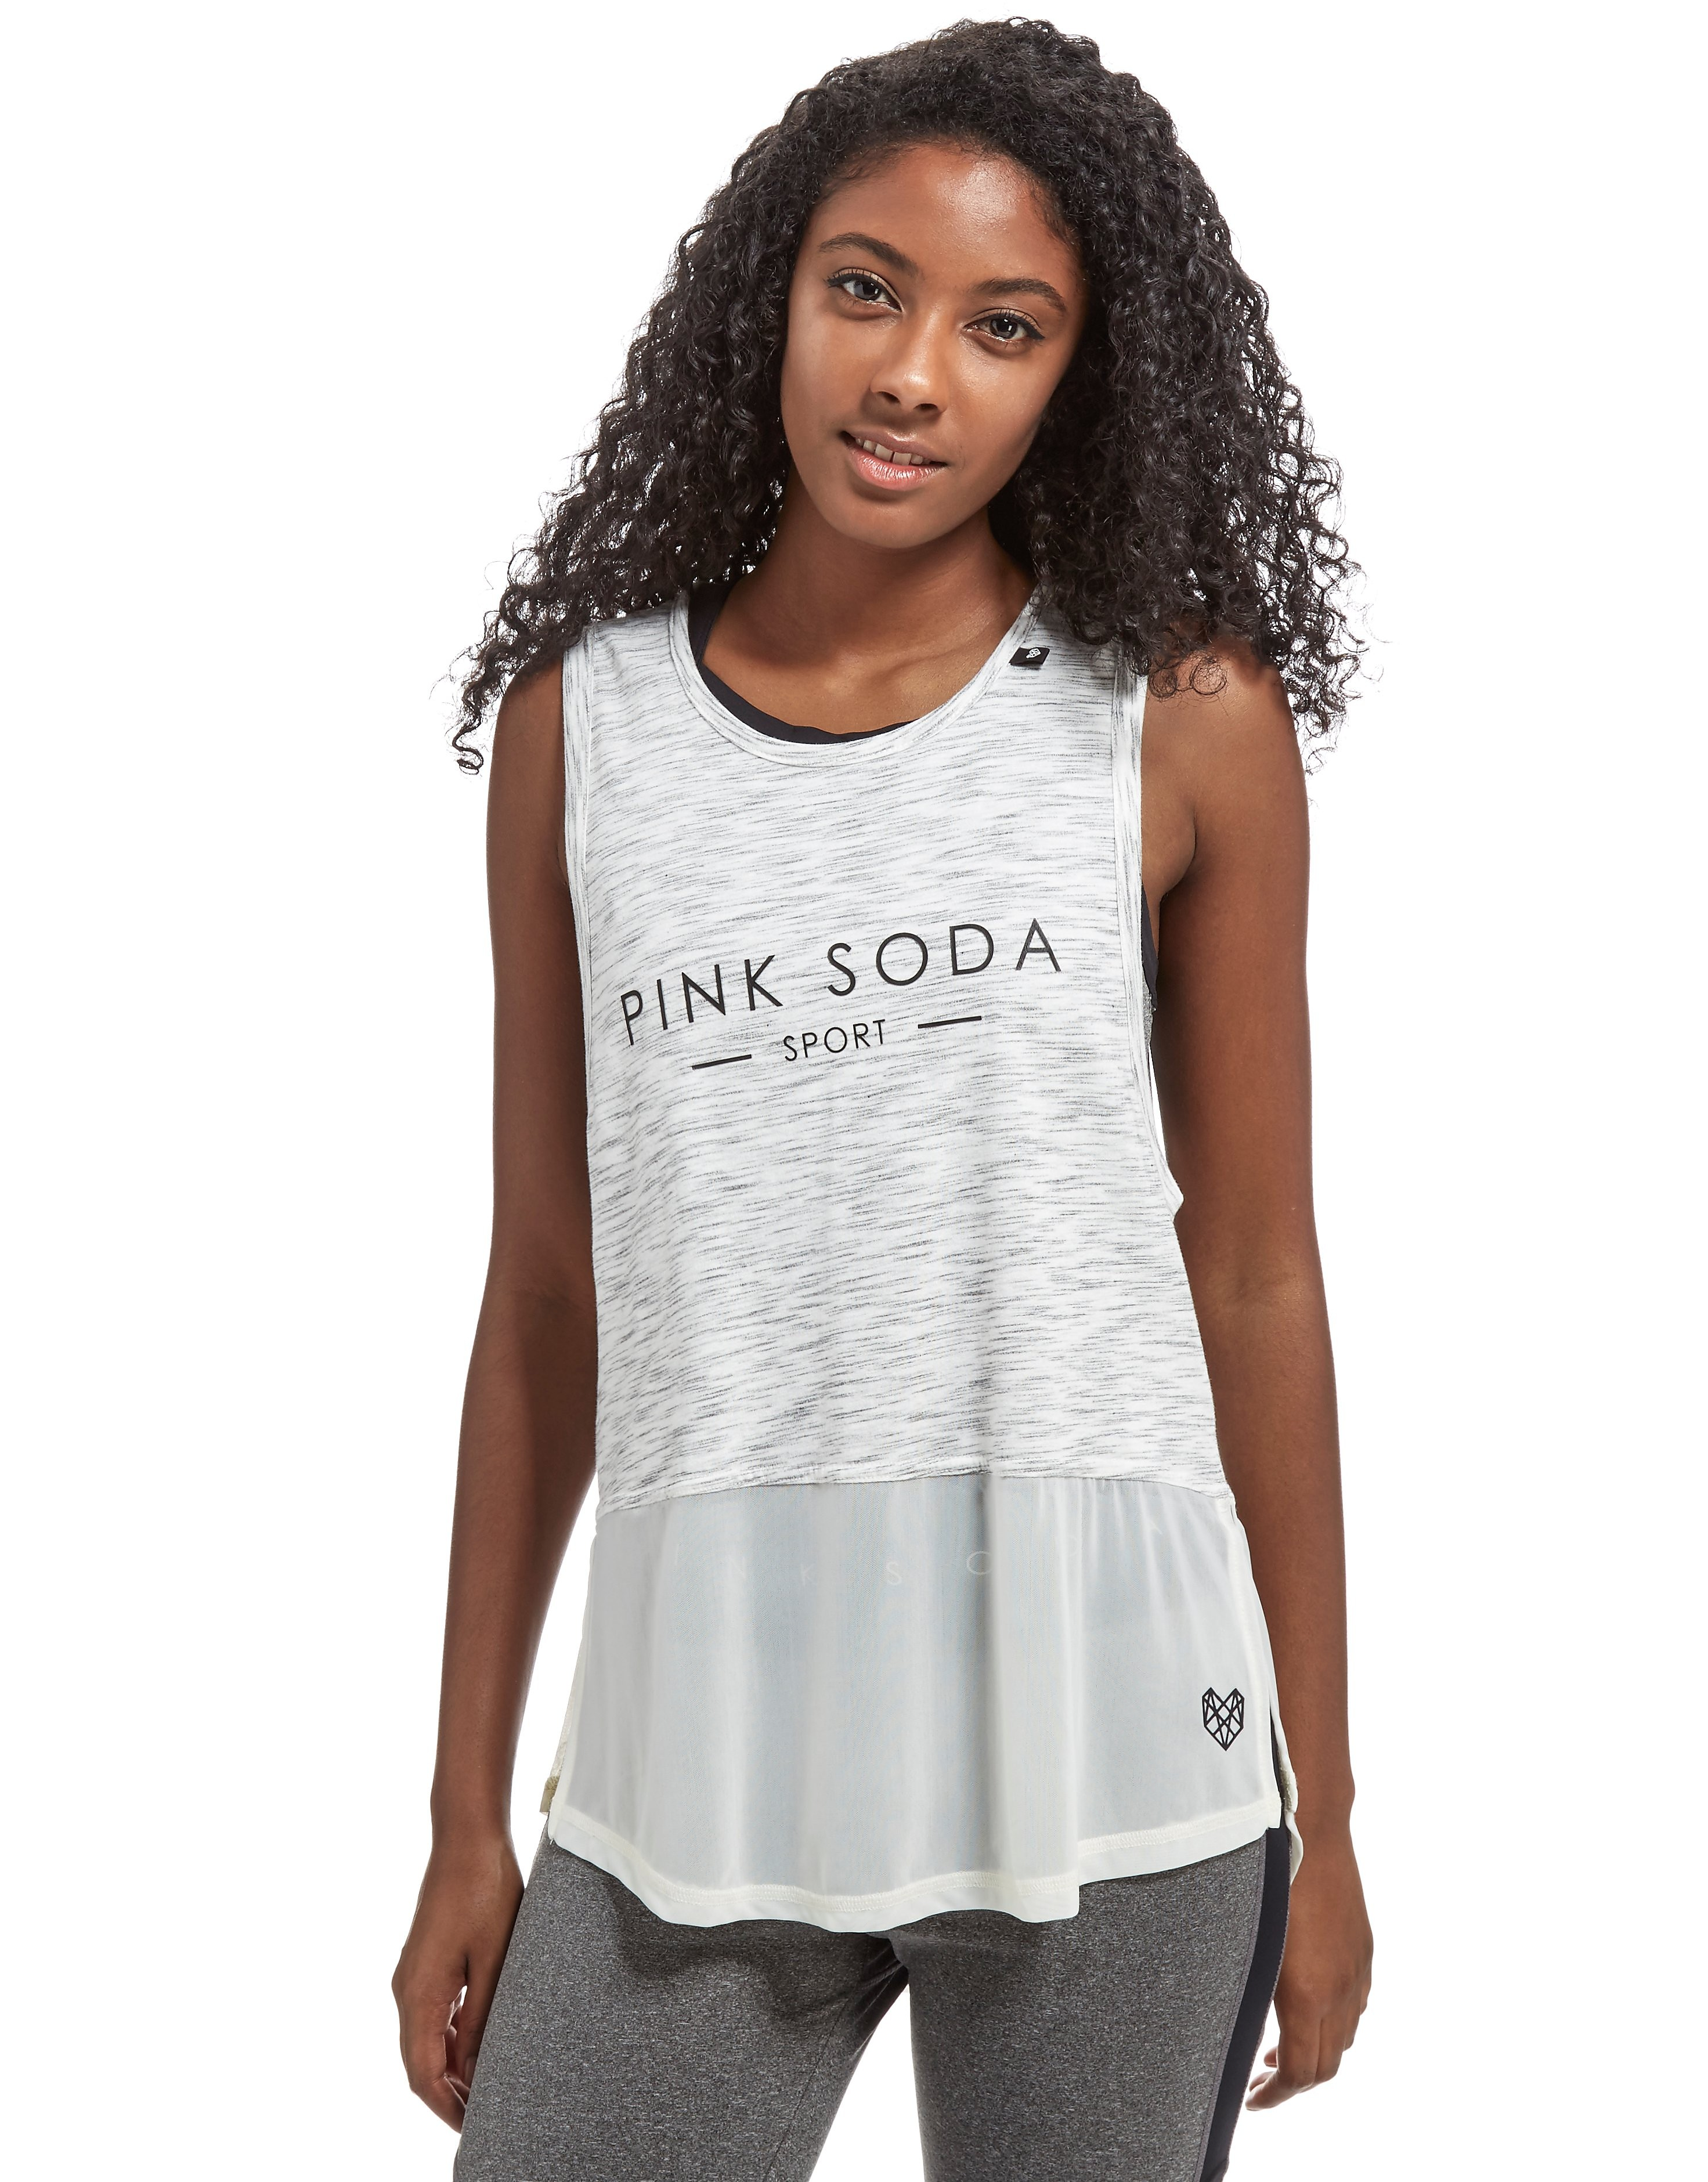 Pink Soda Sport Spacedye Muscle Tank Top